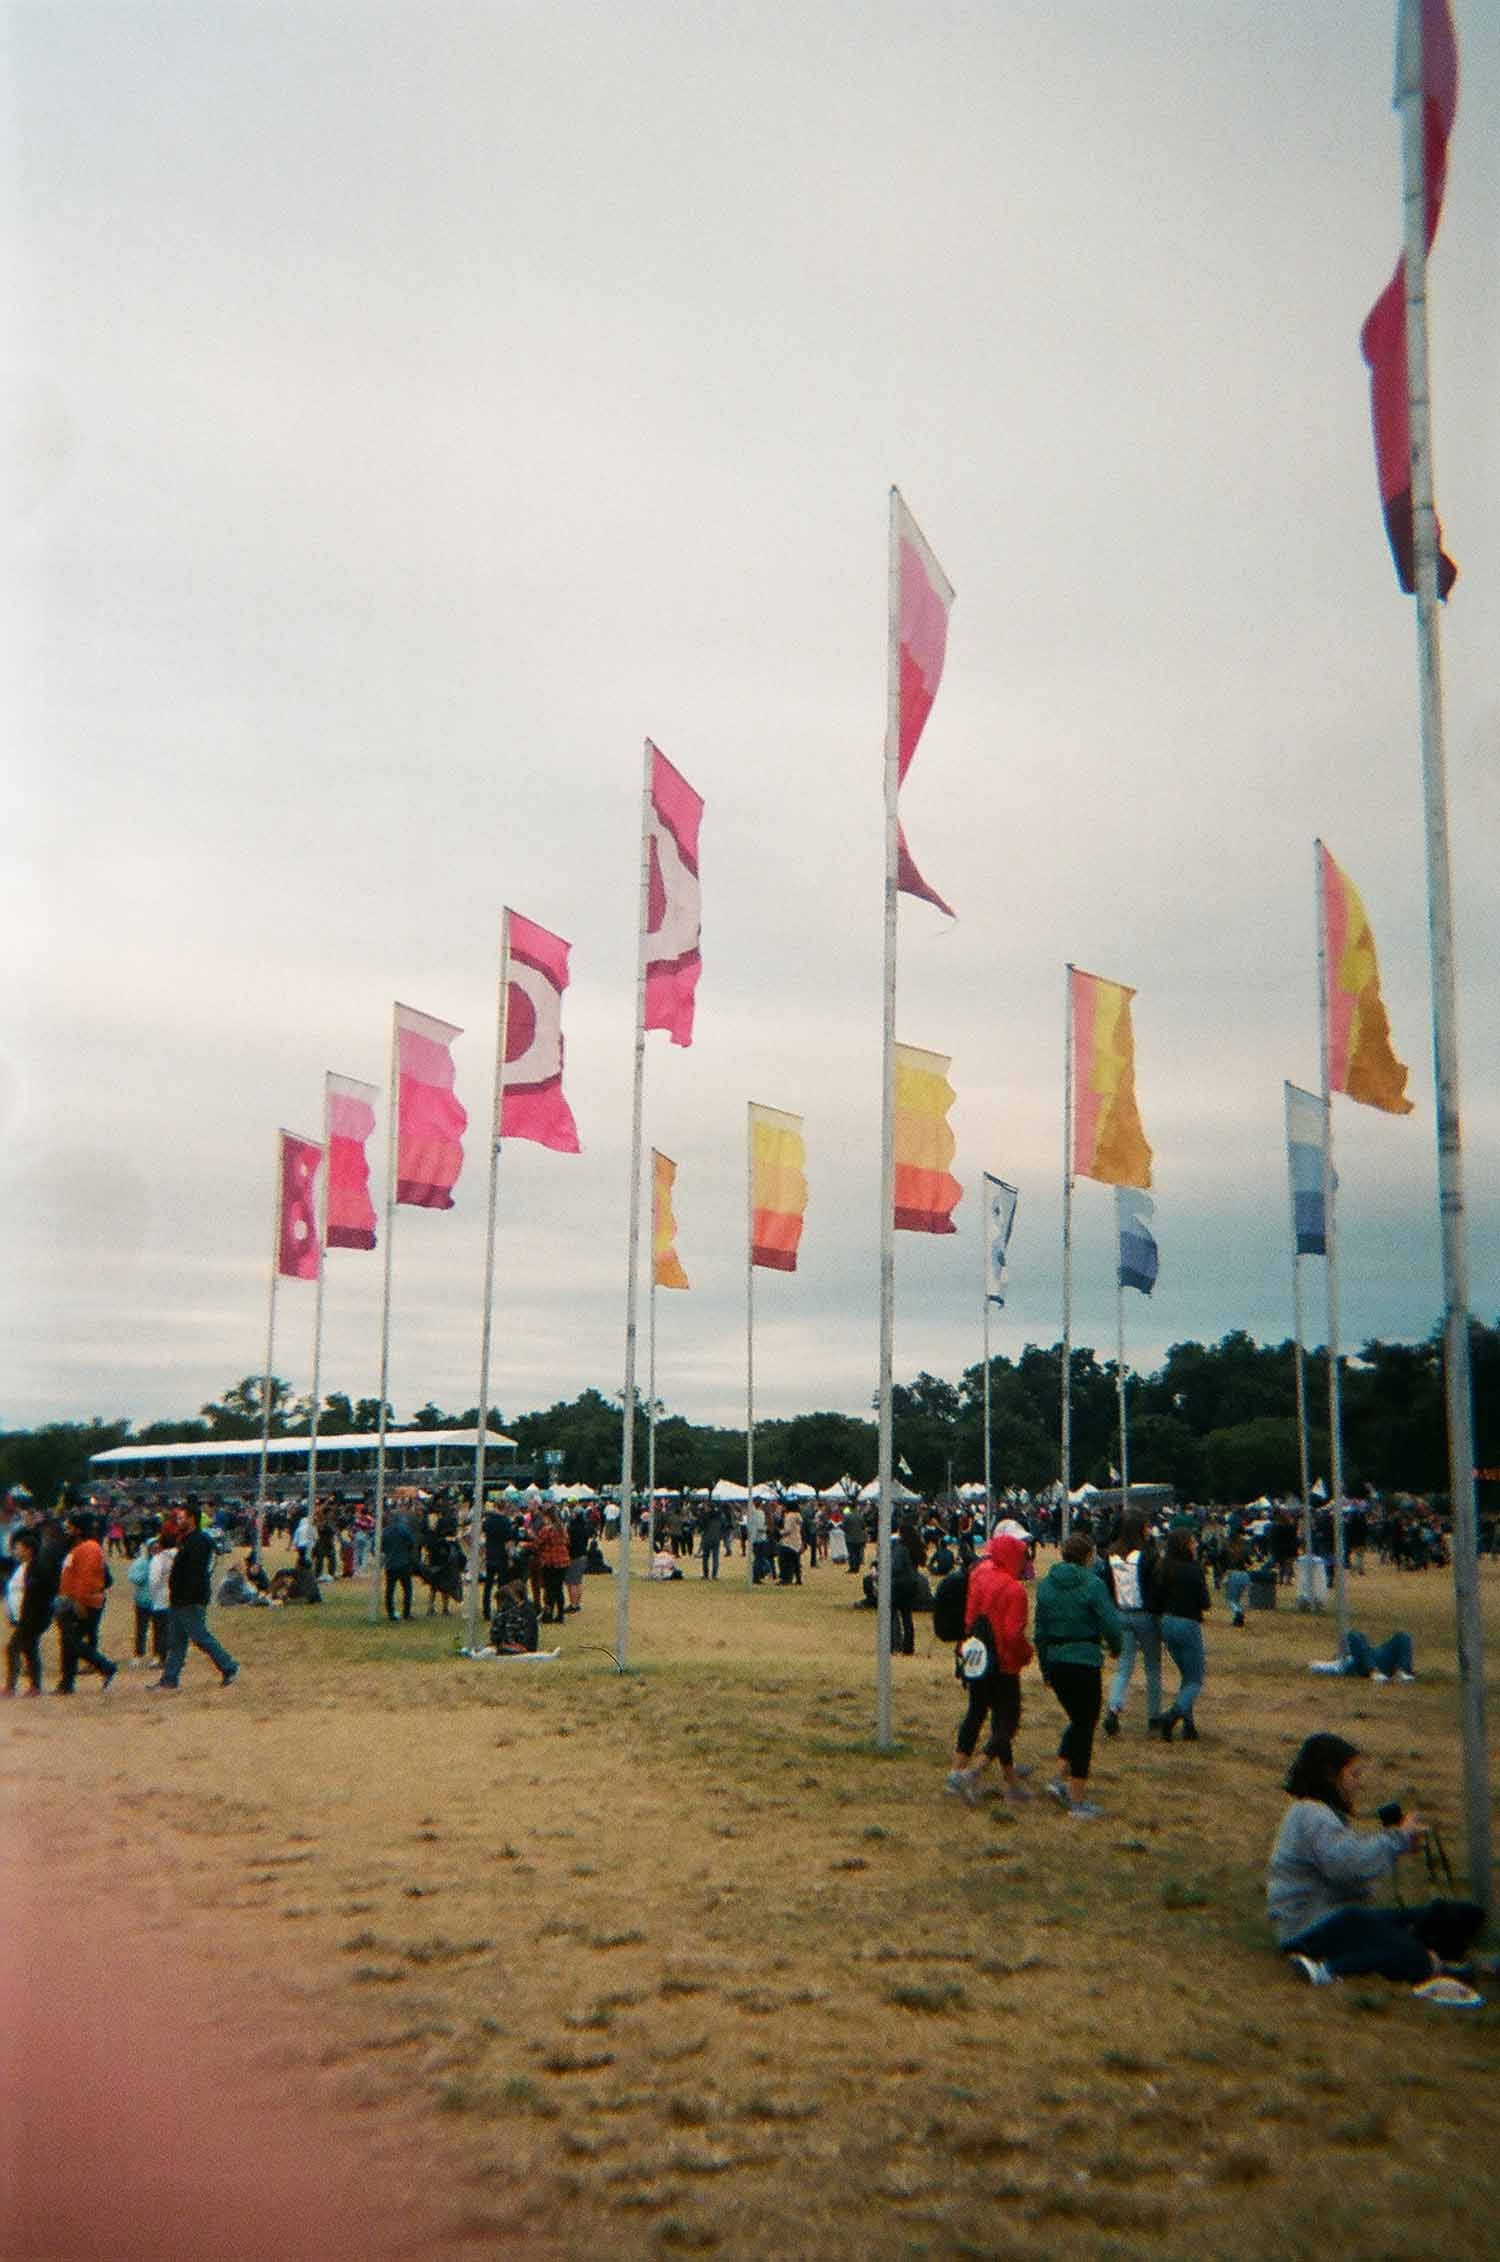 The flags at ACL.